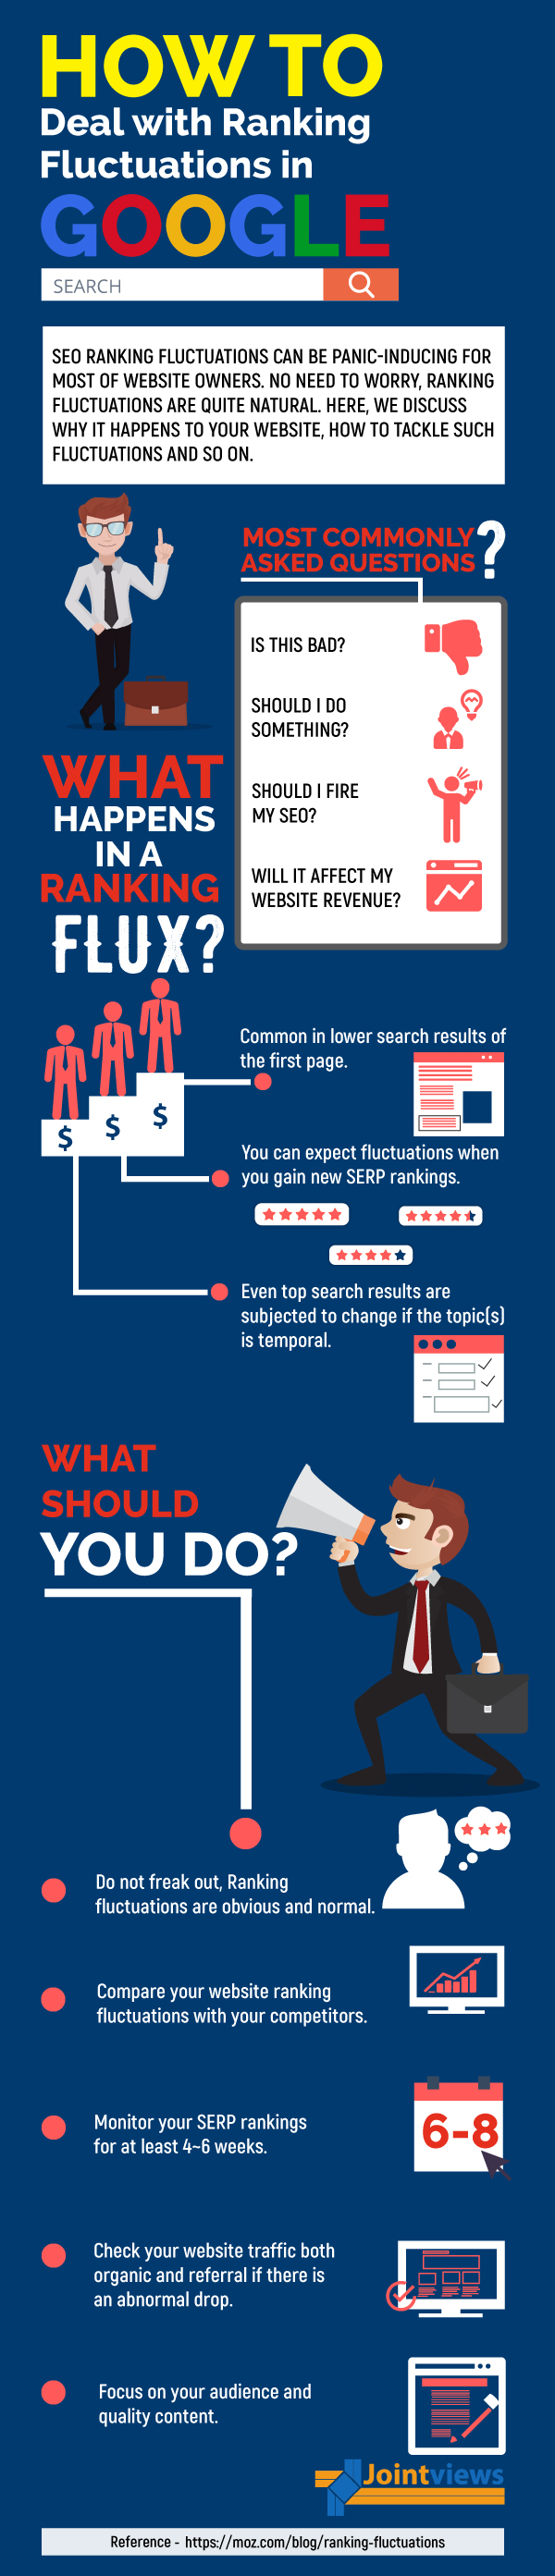 How-to-Deal-with-Ranking-Fluctuations-in-Google-infographic